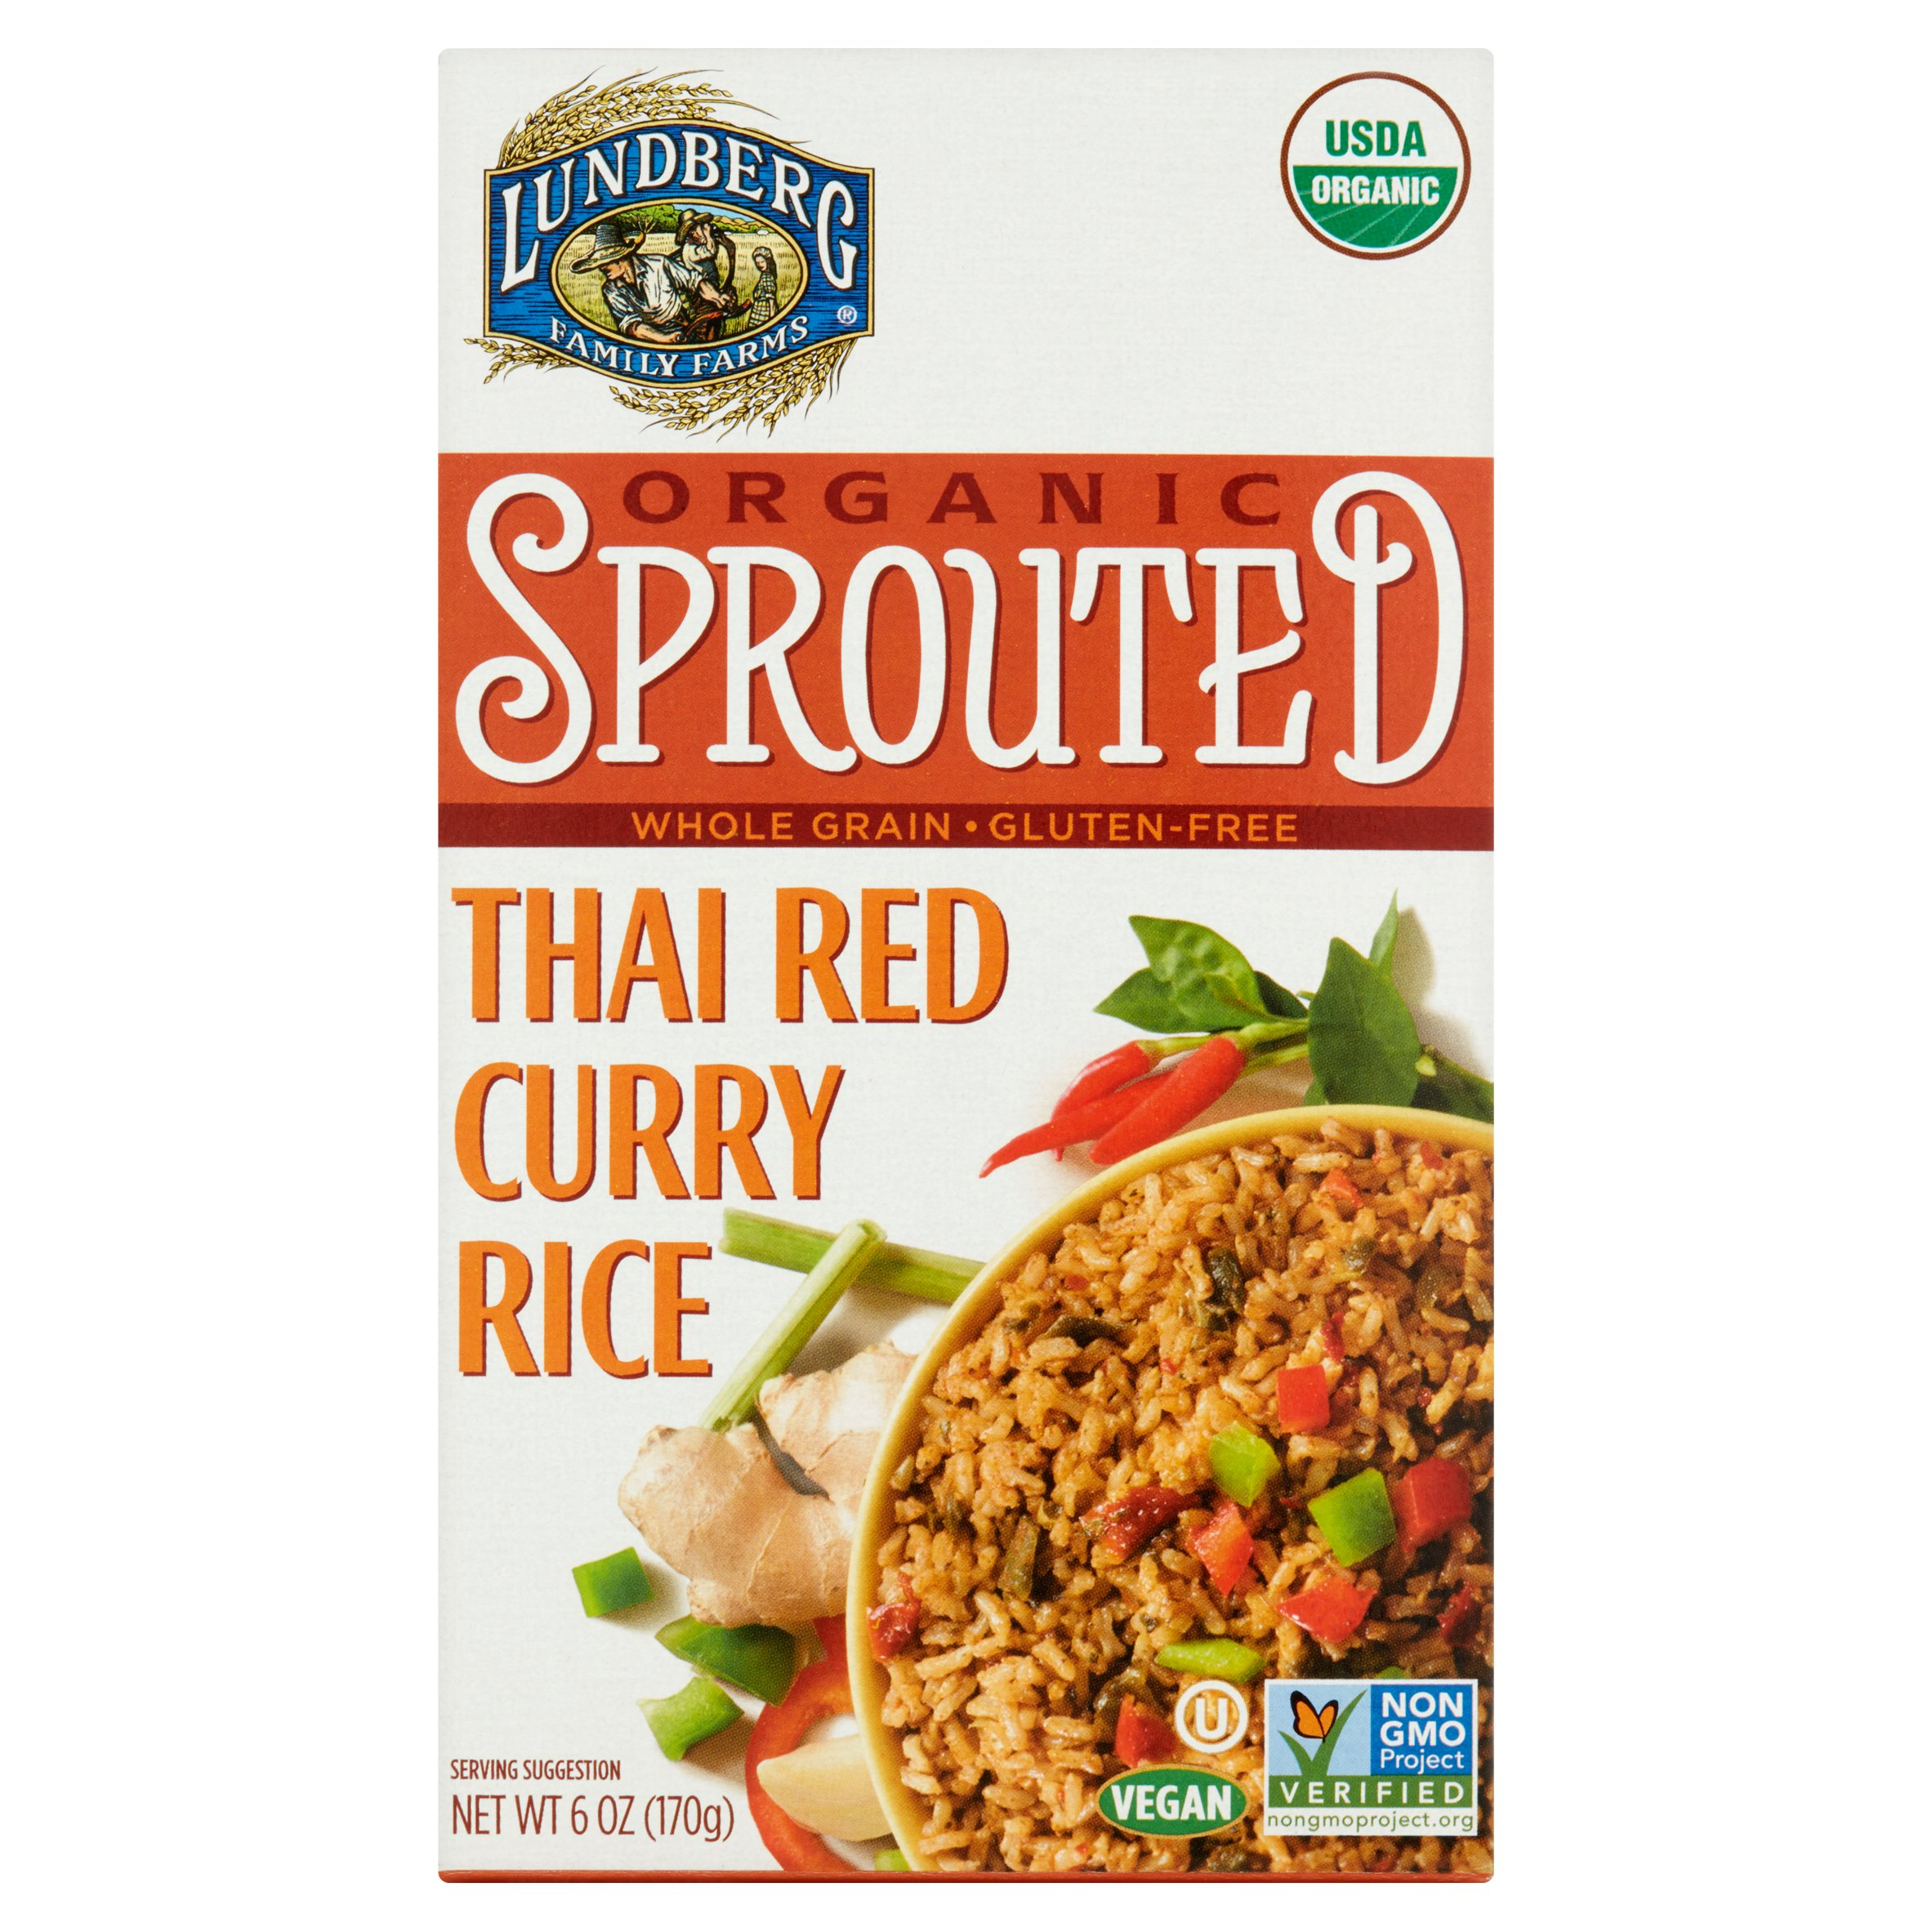 Lundberg Family Farms Organic Sprouted Thai Red Curry Rice 6 Oz 6 Pack Walmart Com Walmart Com